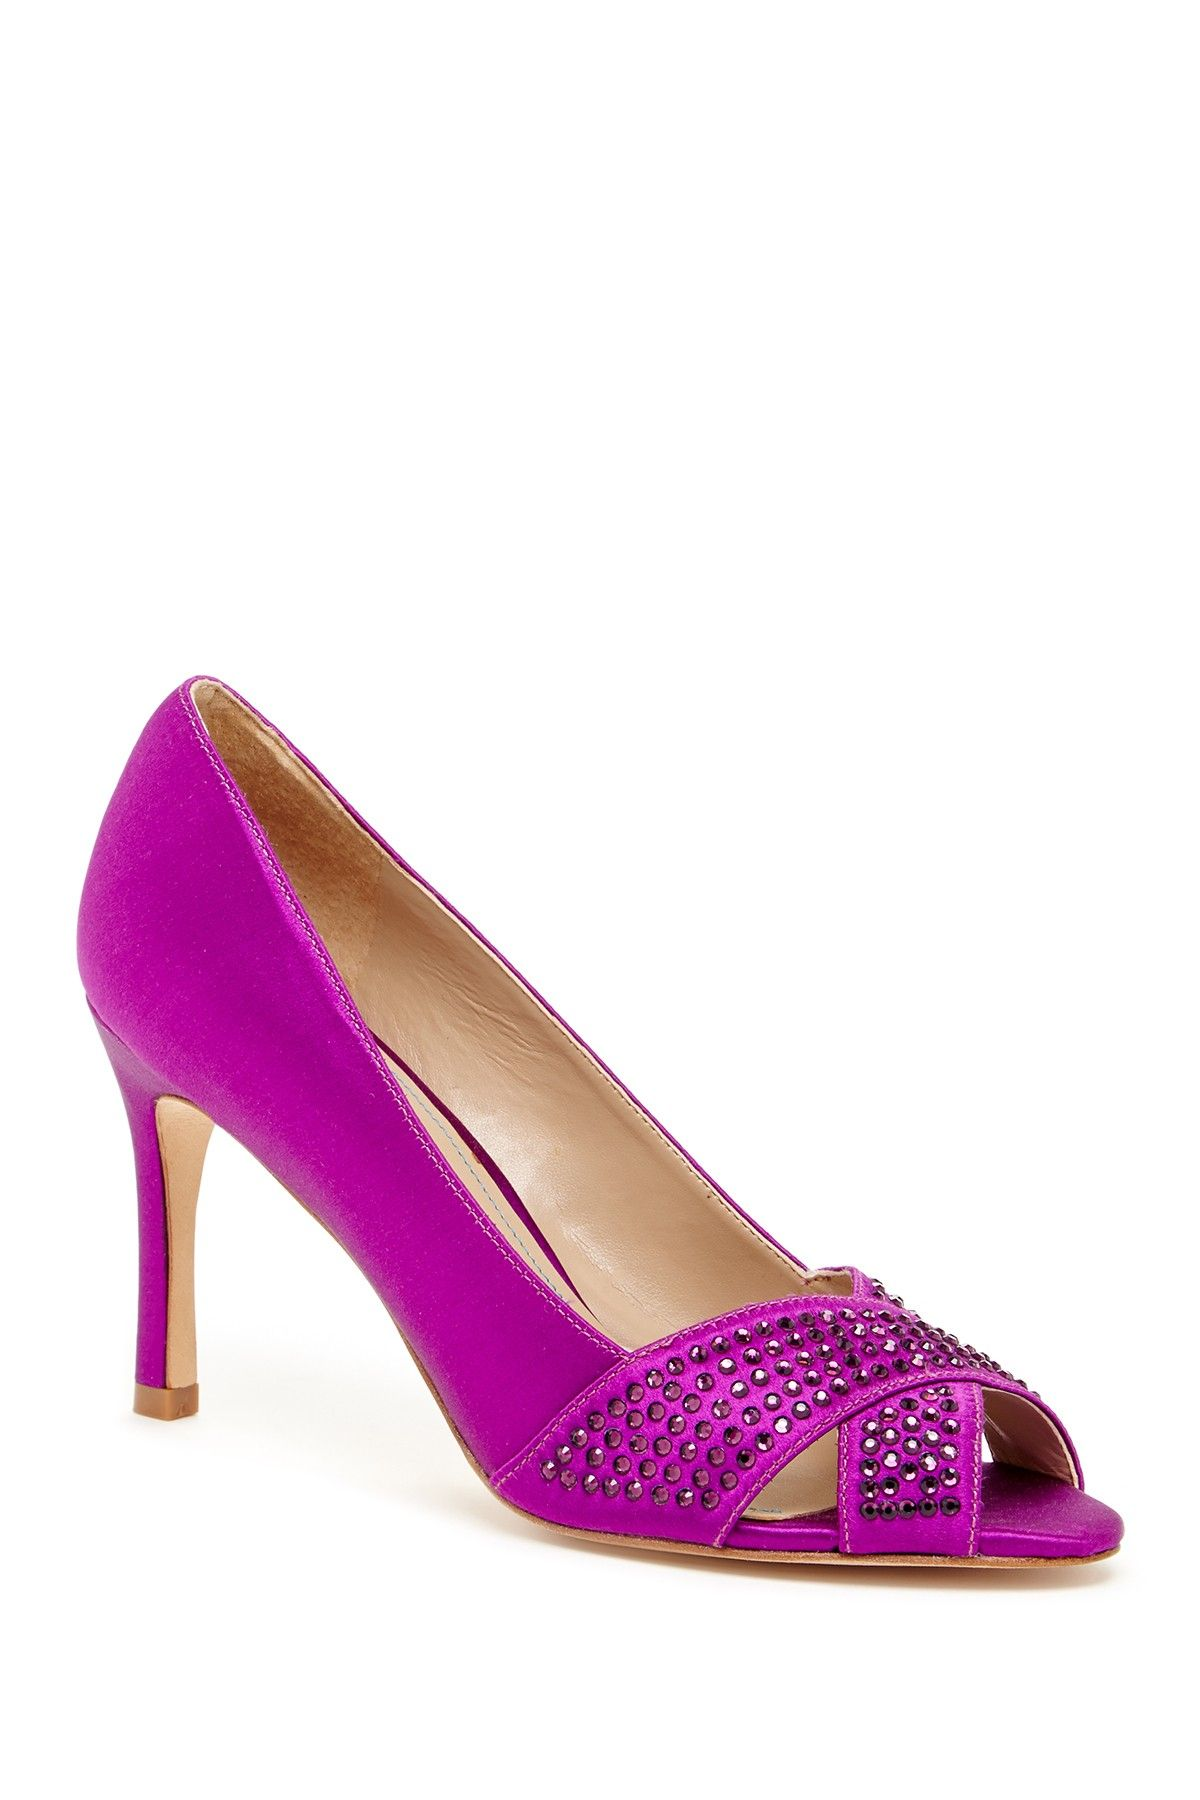 David Tutera  Specialty Peep Toe Pump by DAVID TUTERA on @HauteLook